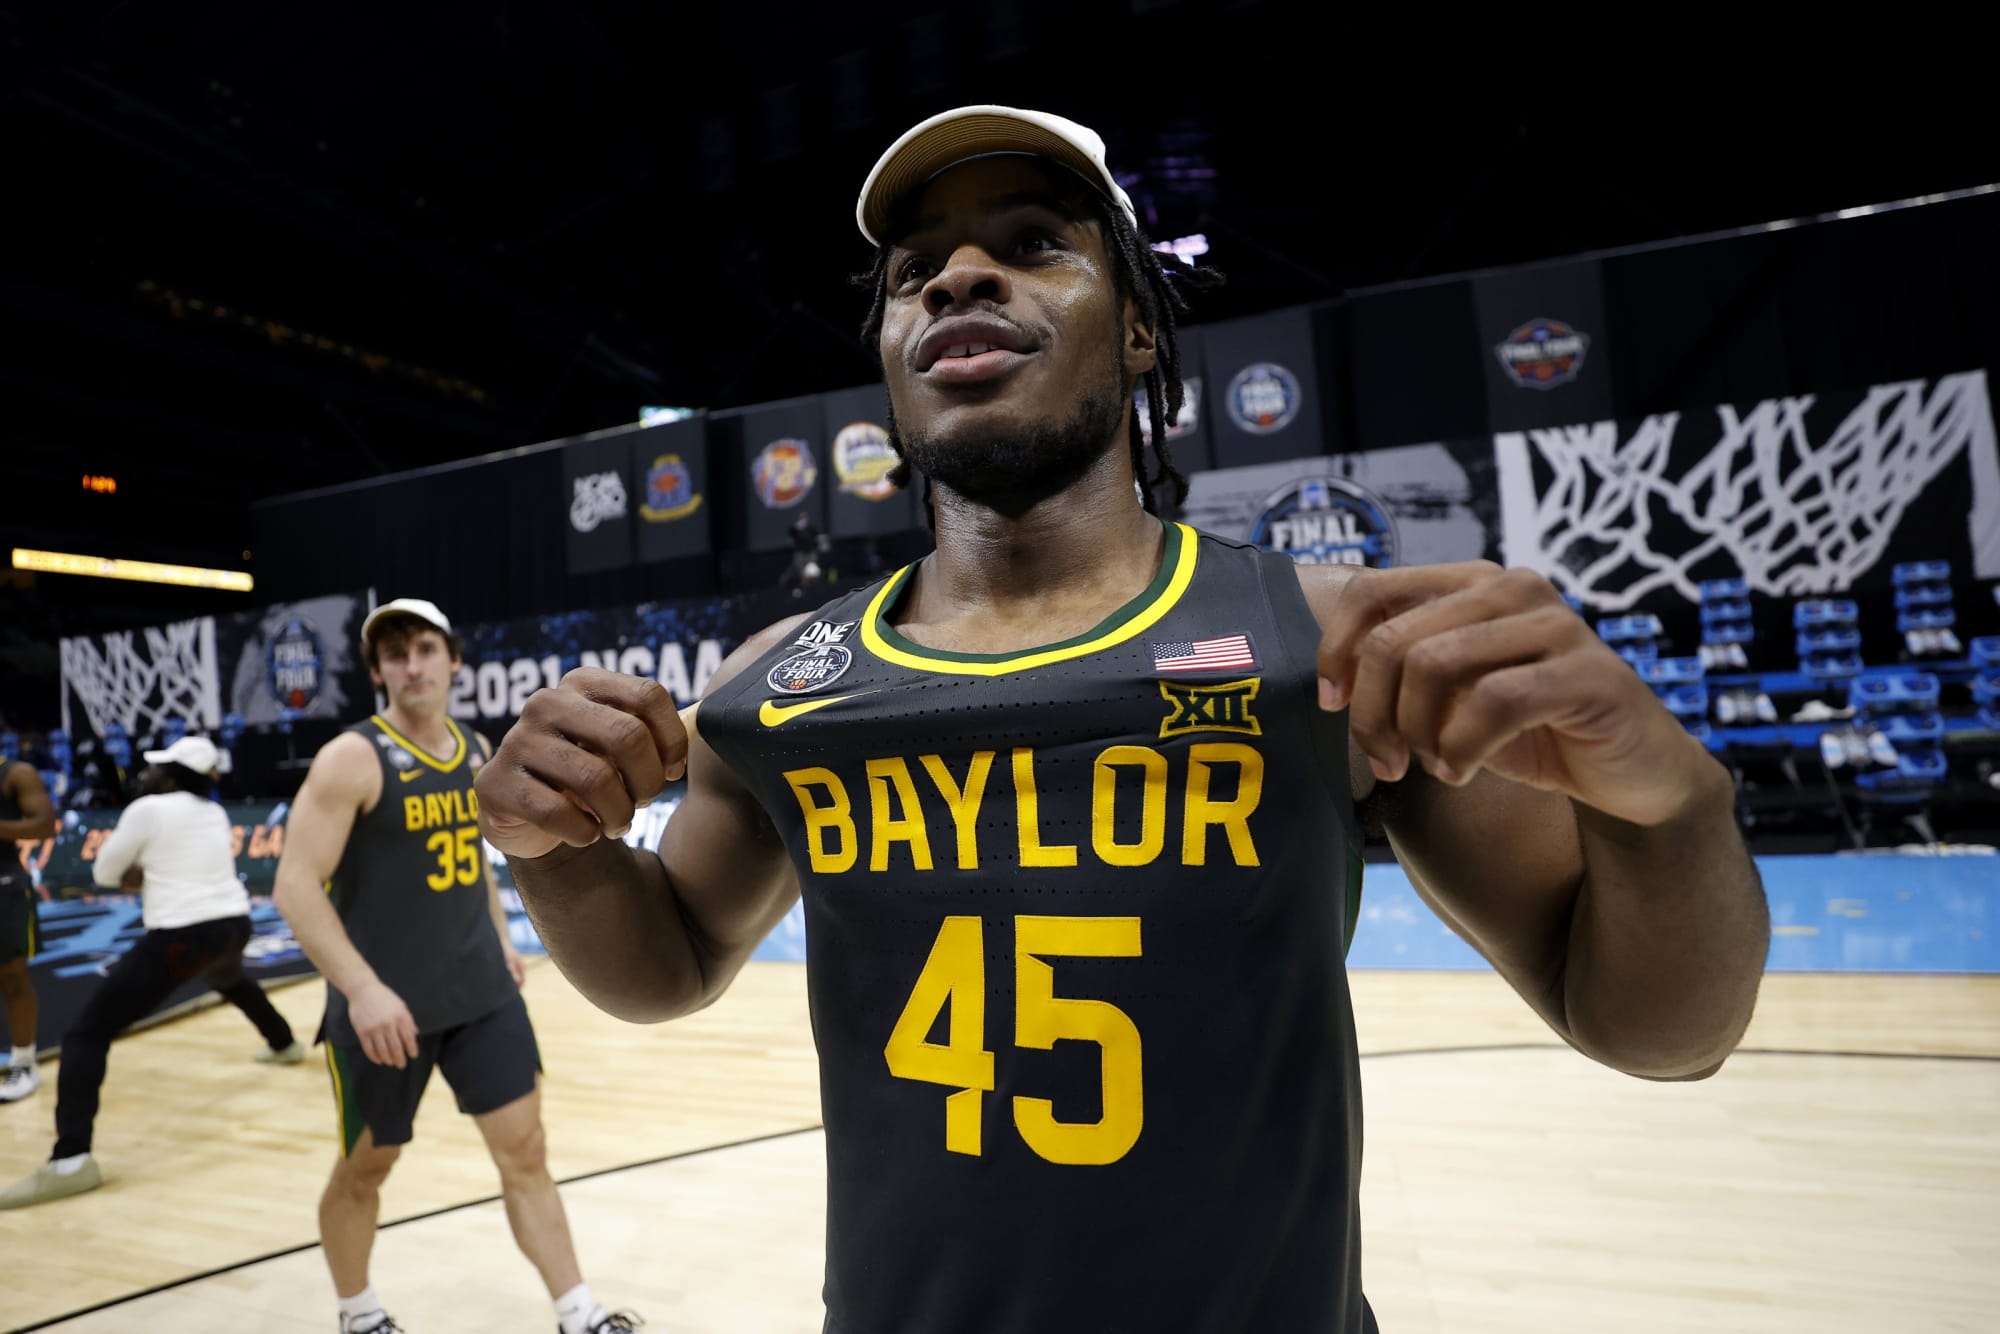 Baylor guard Davion Mitchell scouting report: Could the Raptors be a fit?